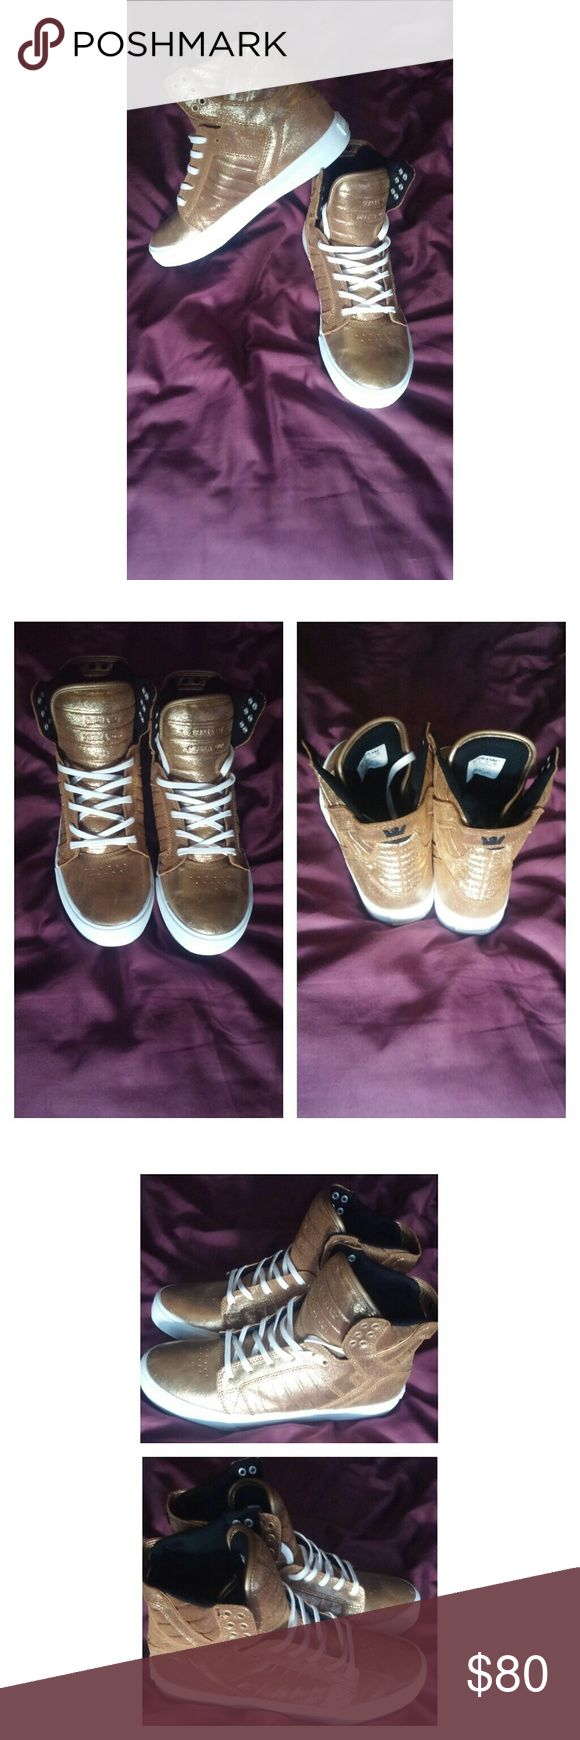 Supra Muska 001 Brand new never worn.  Size 10 in womans. Size 8 in mens.  Gold glitter color. Doesn't come with a box. Open to reasonable offers. Please use offer button. Supra Shoes Sneakers